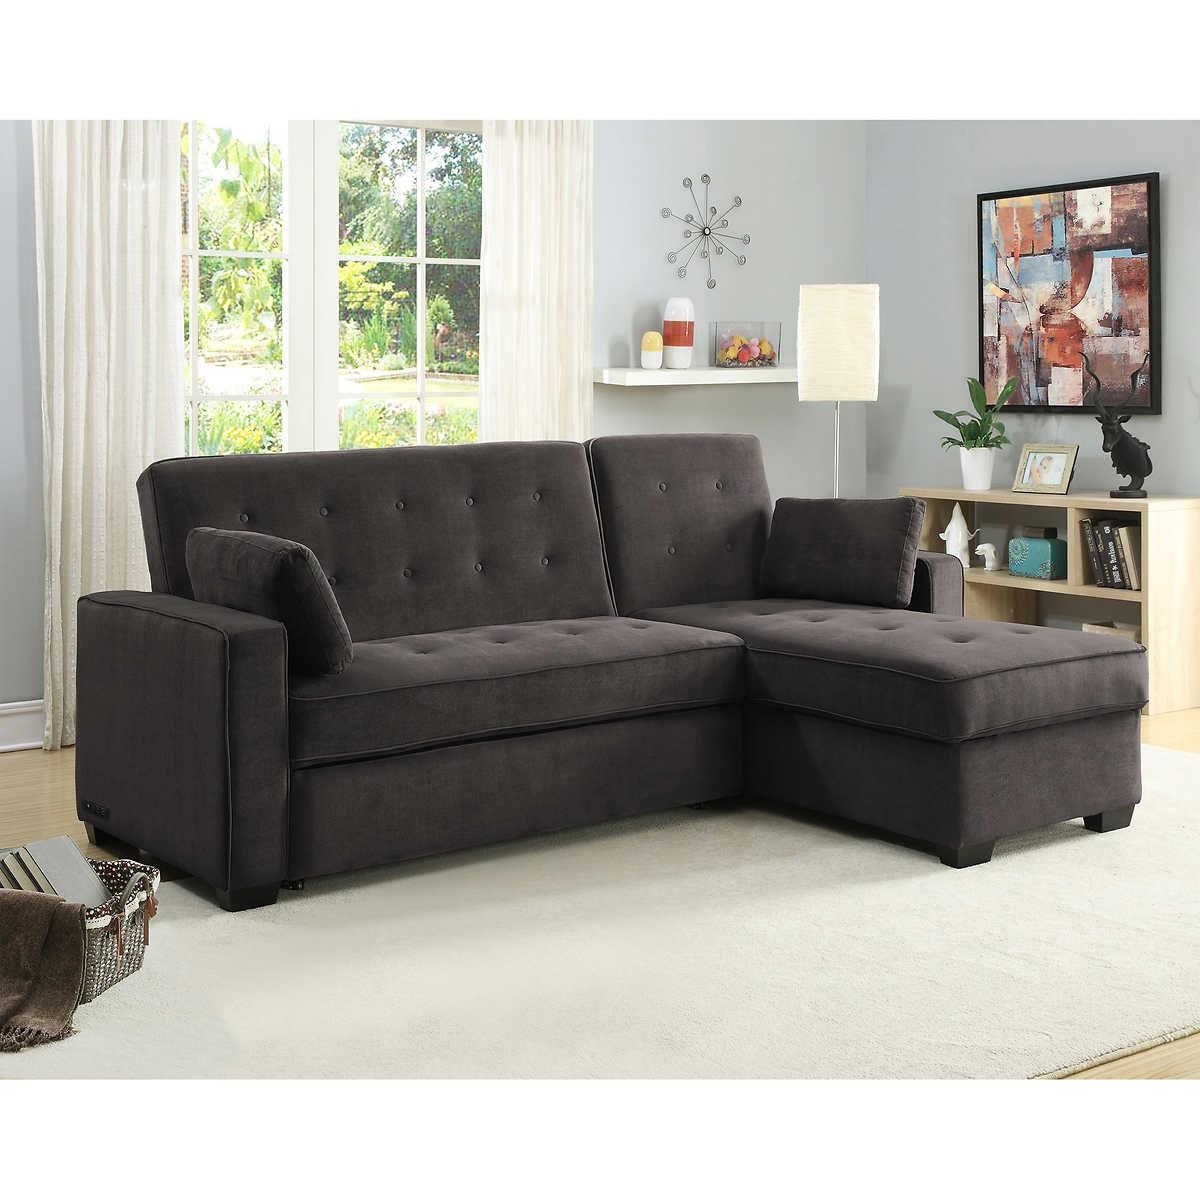 Berkline reclining sofas choosing a reclining sofa brand for Berkline chaise lounge